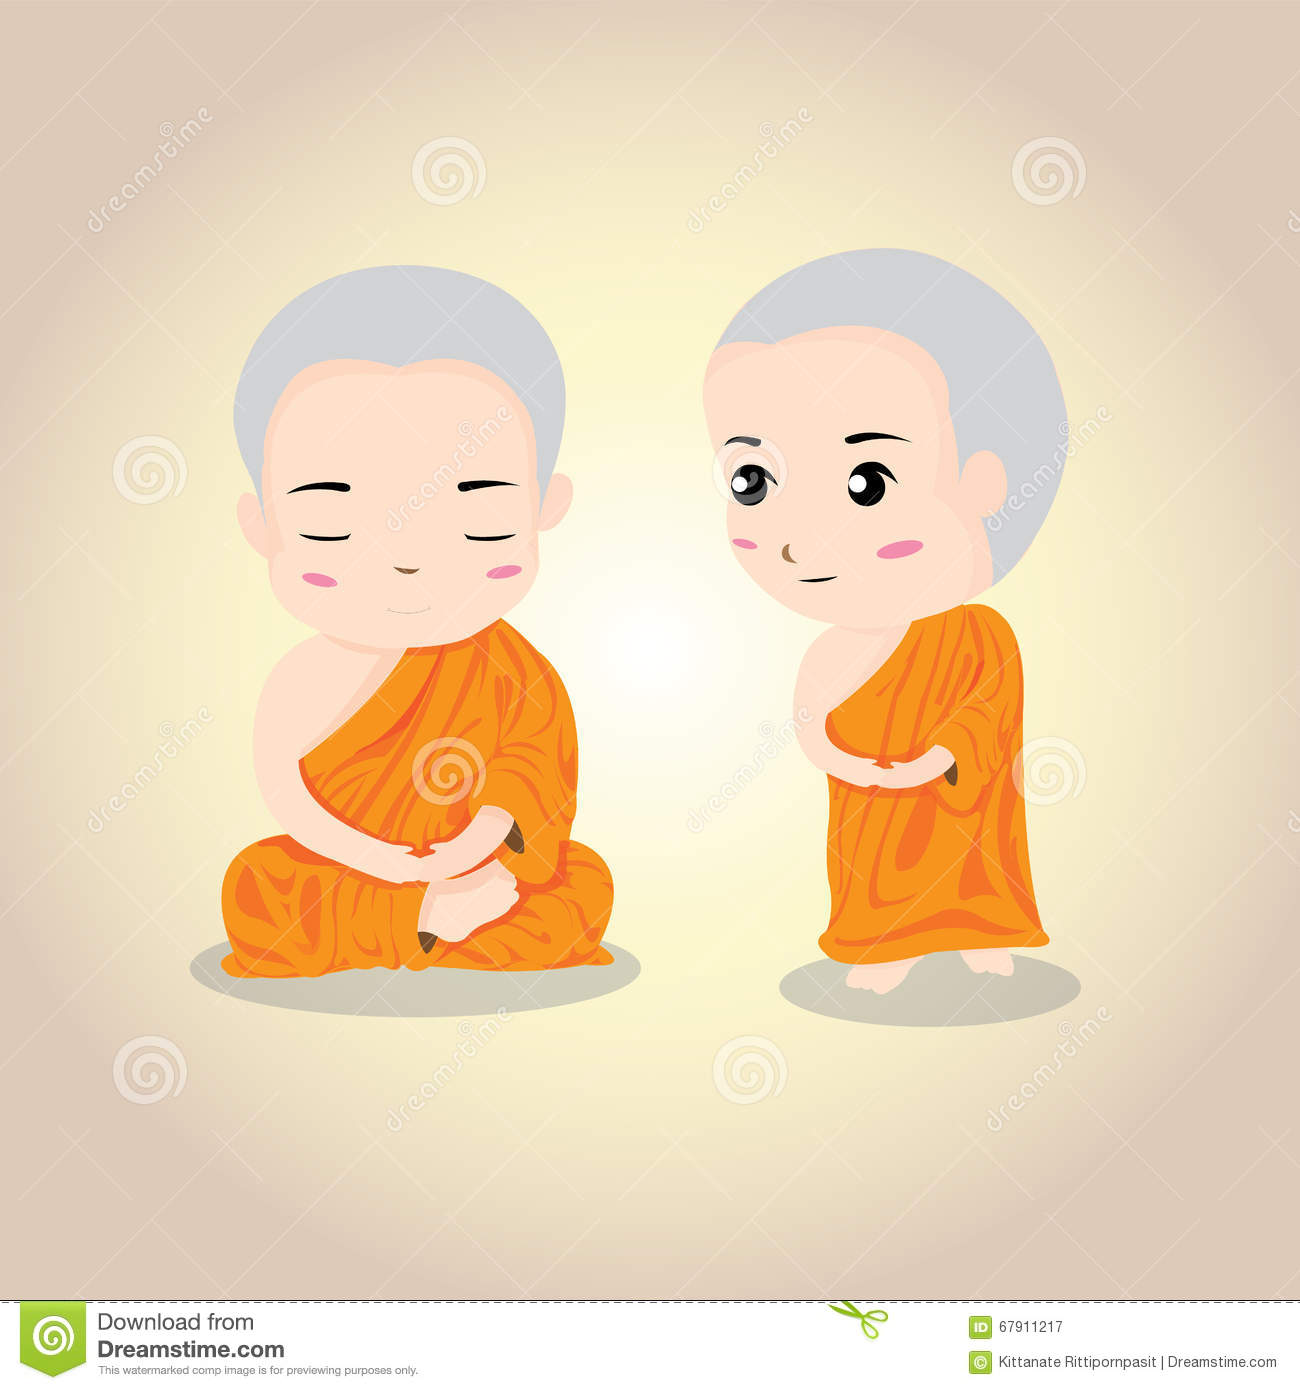 Cute Character Design Illustrator : Vector illustration thai monk stock image